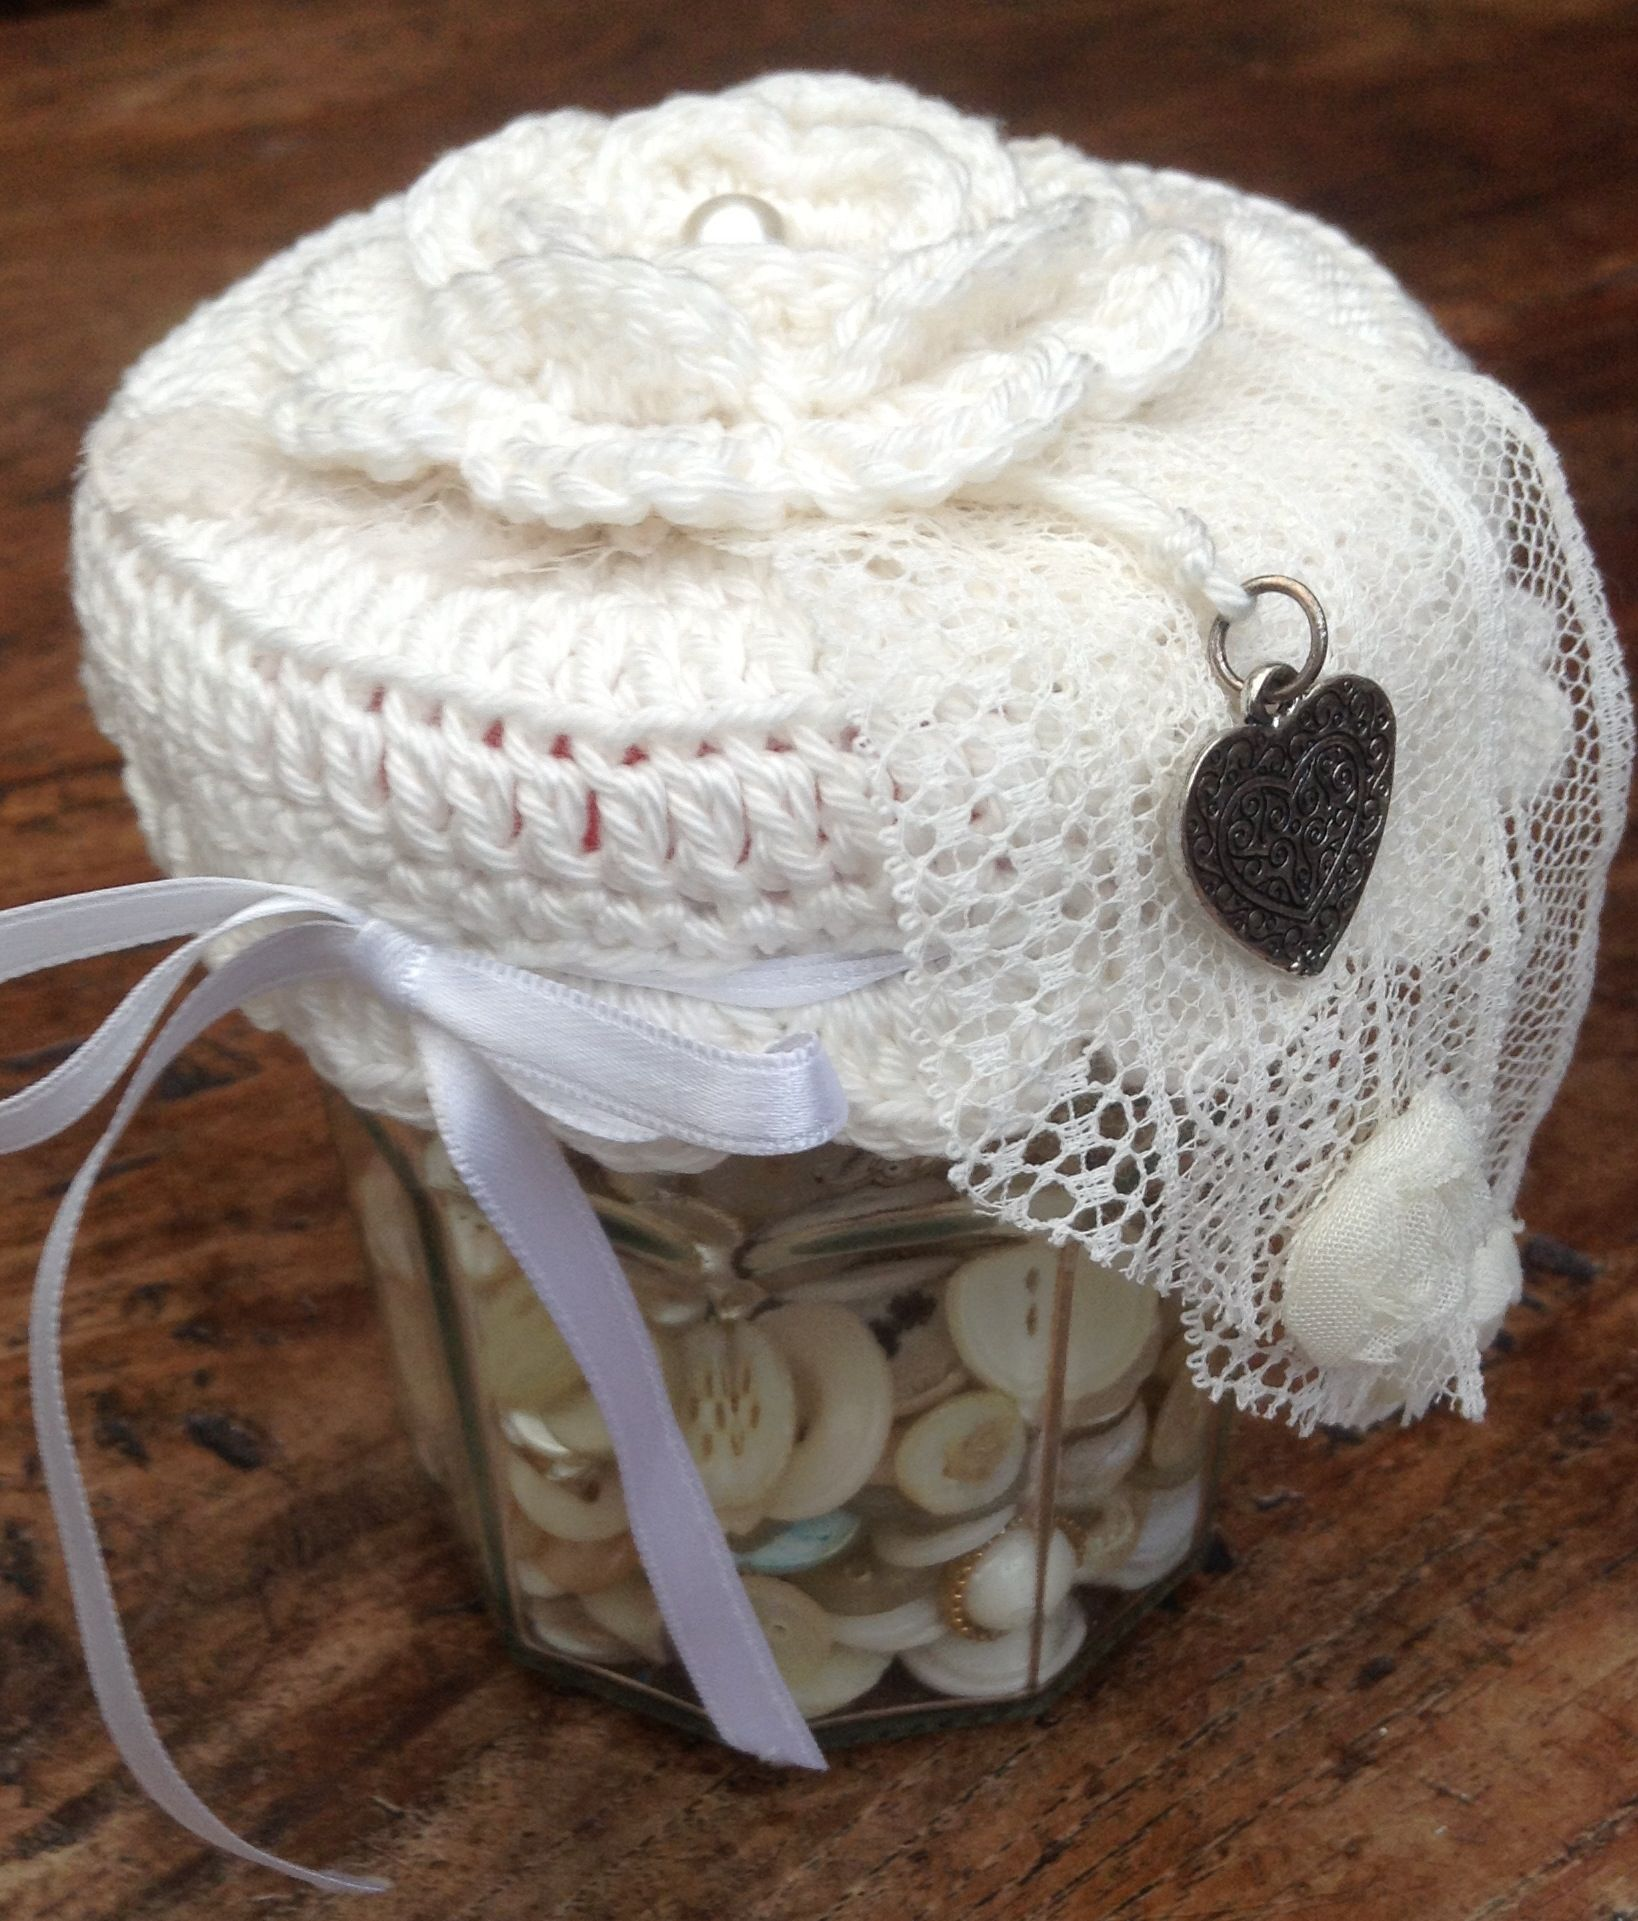 Crocheted jar lid cover | Crochet Cozy - Jar Lid Cover | Pinterest ...